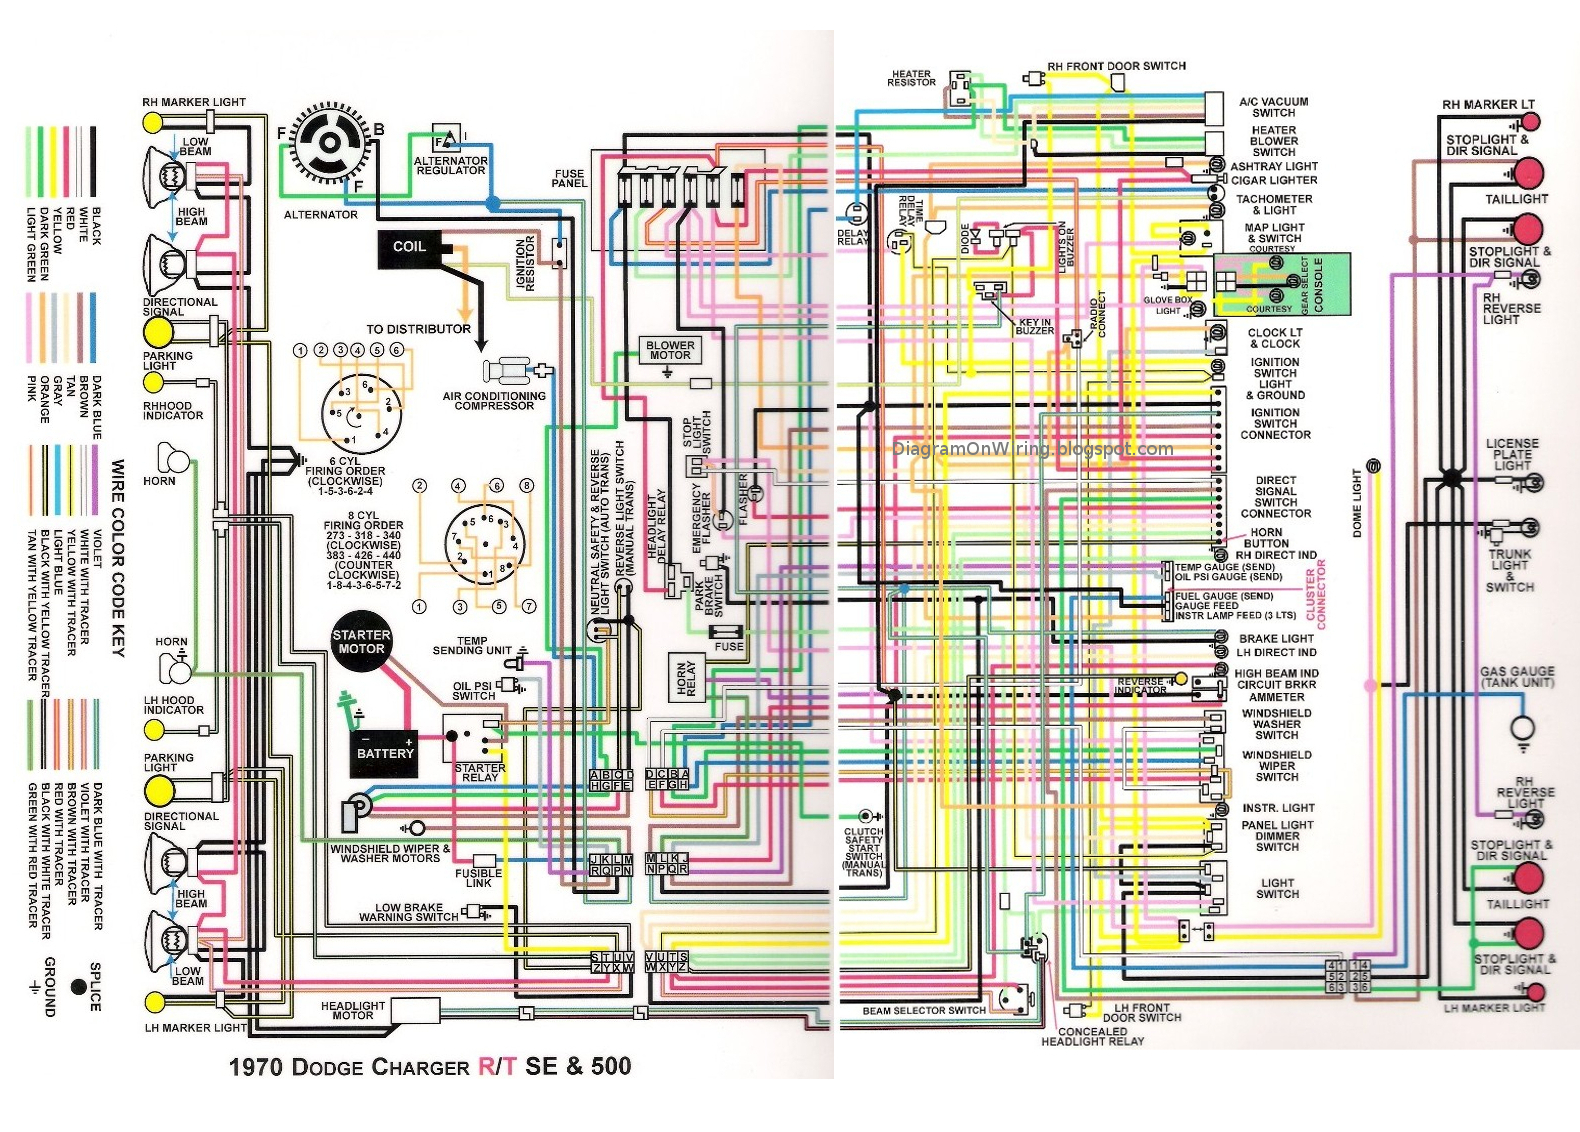 Nova Wiper Motor Wiring Diagram Auto Electrical Showing The Parts Of A Simple